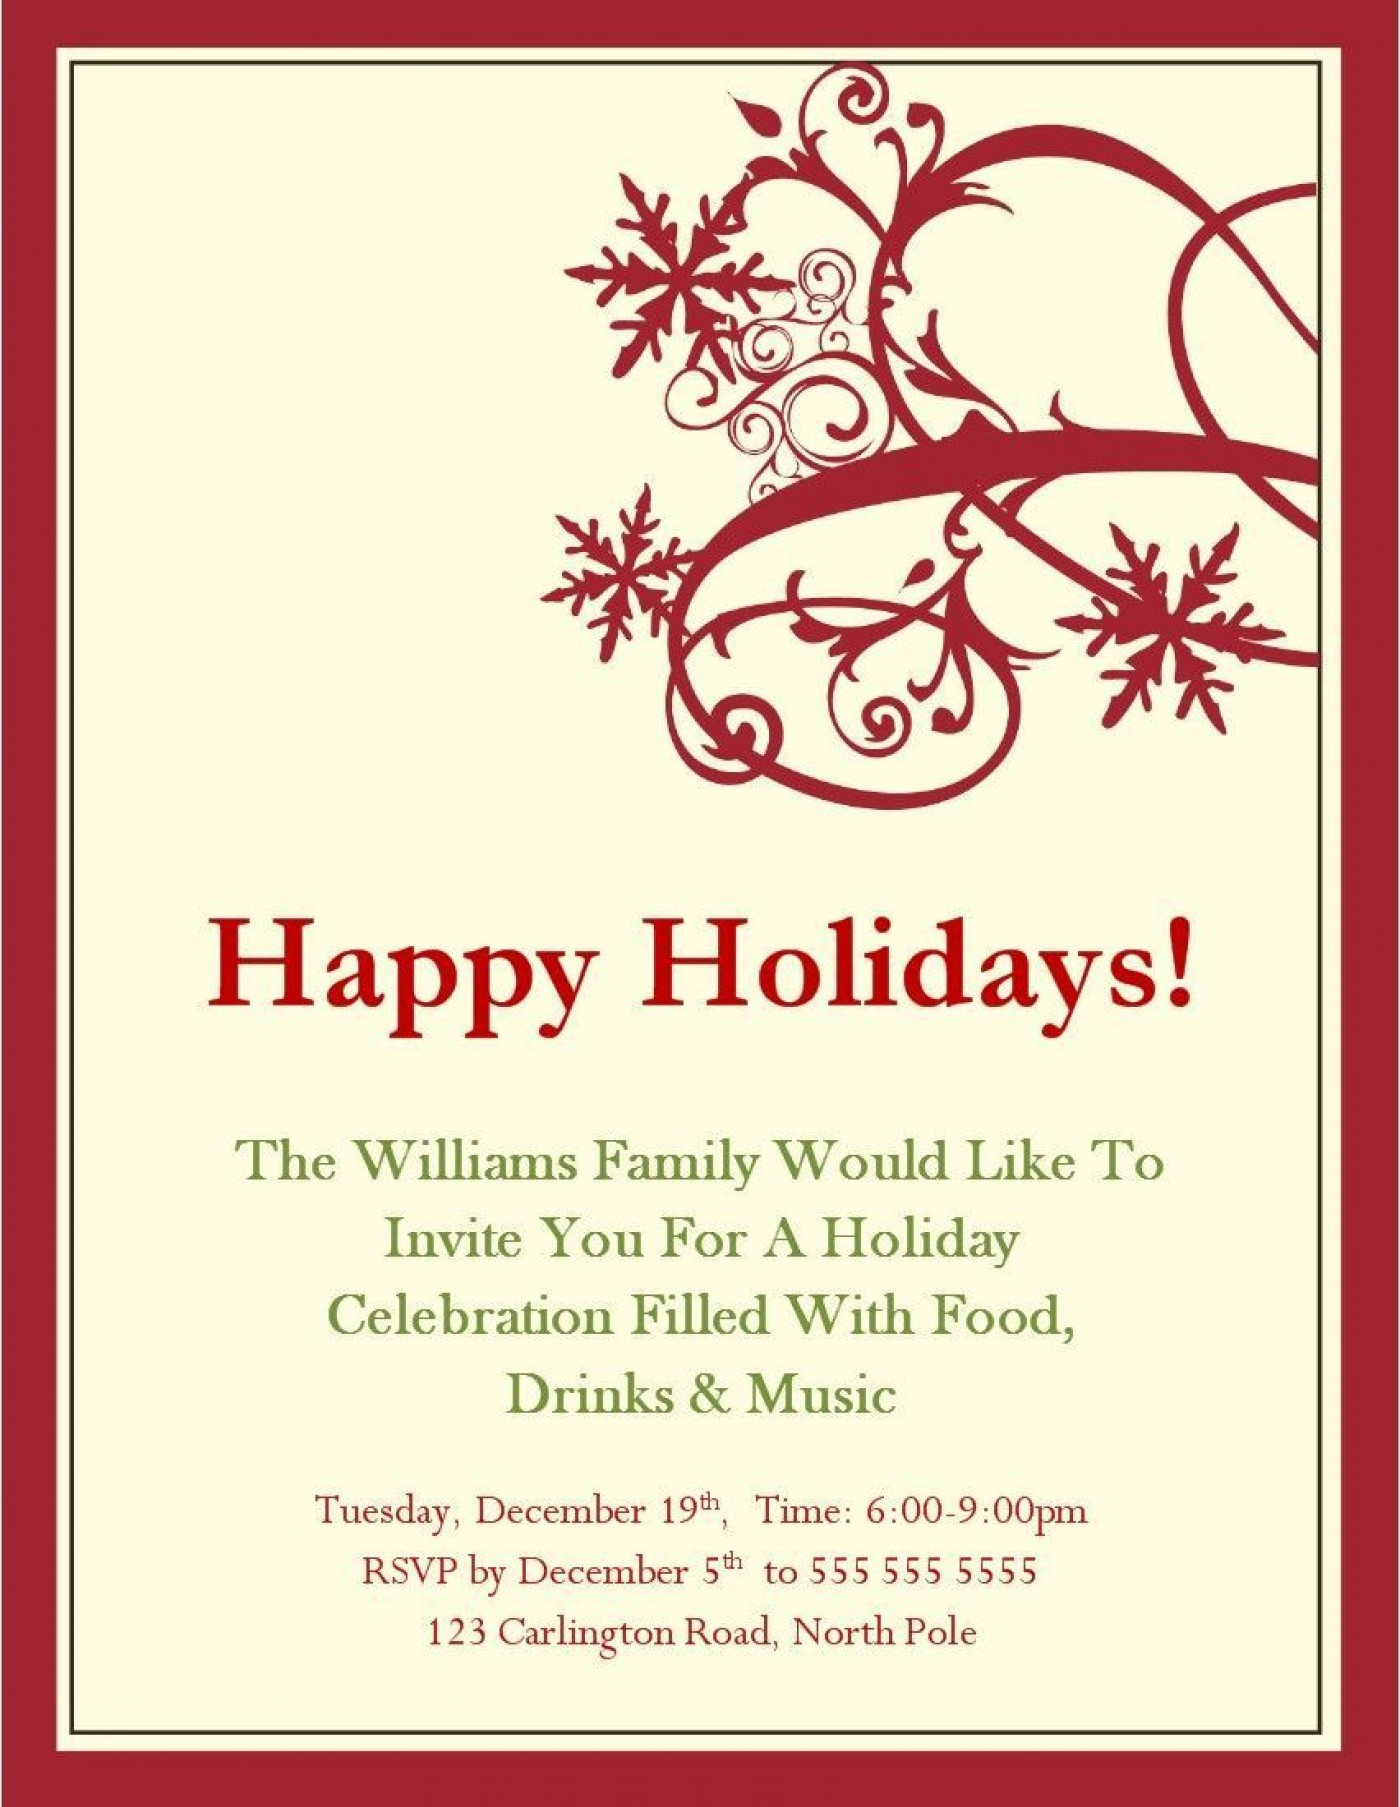 004 Exceptional Xma Party Invite Template Free Sample  Holiday Invitation Word Download Christma1400